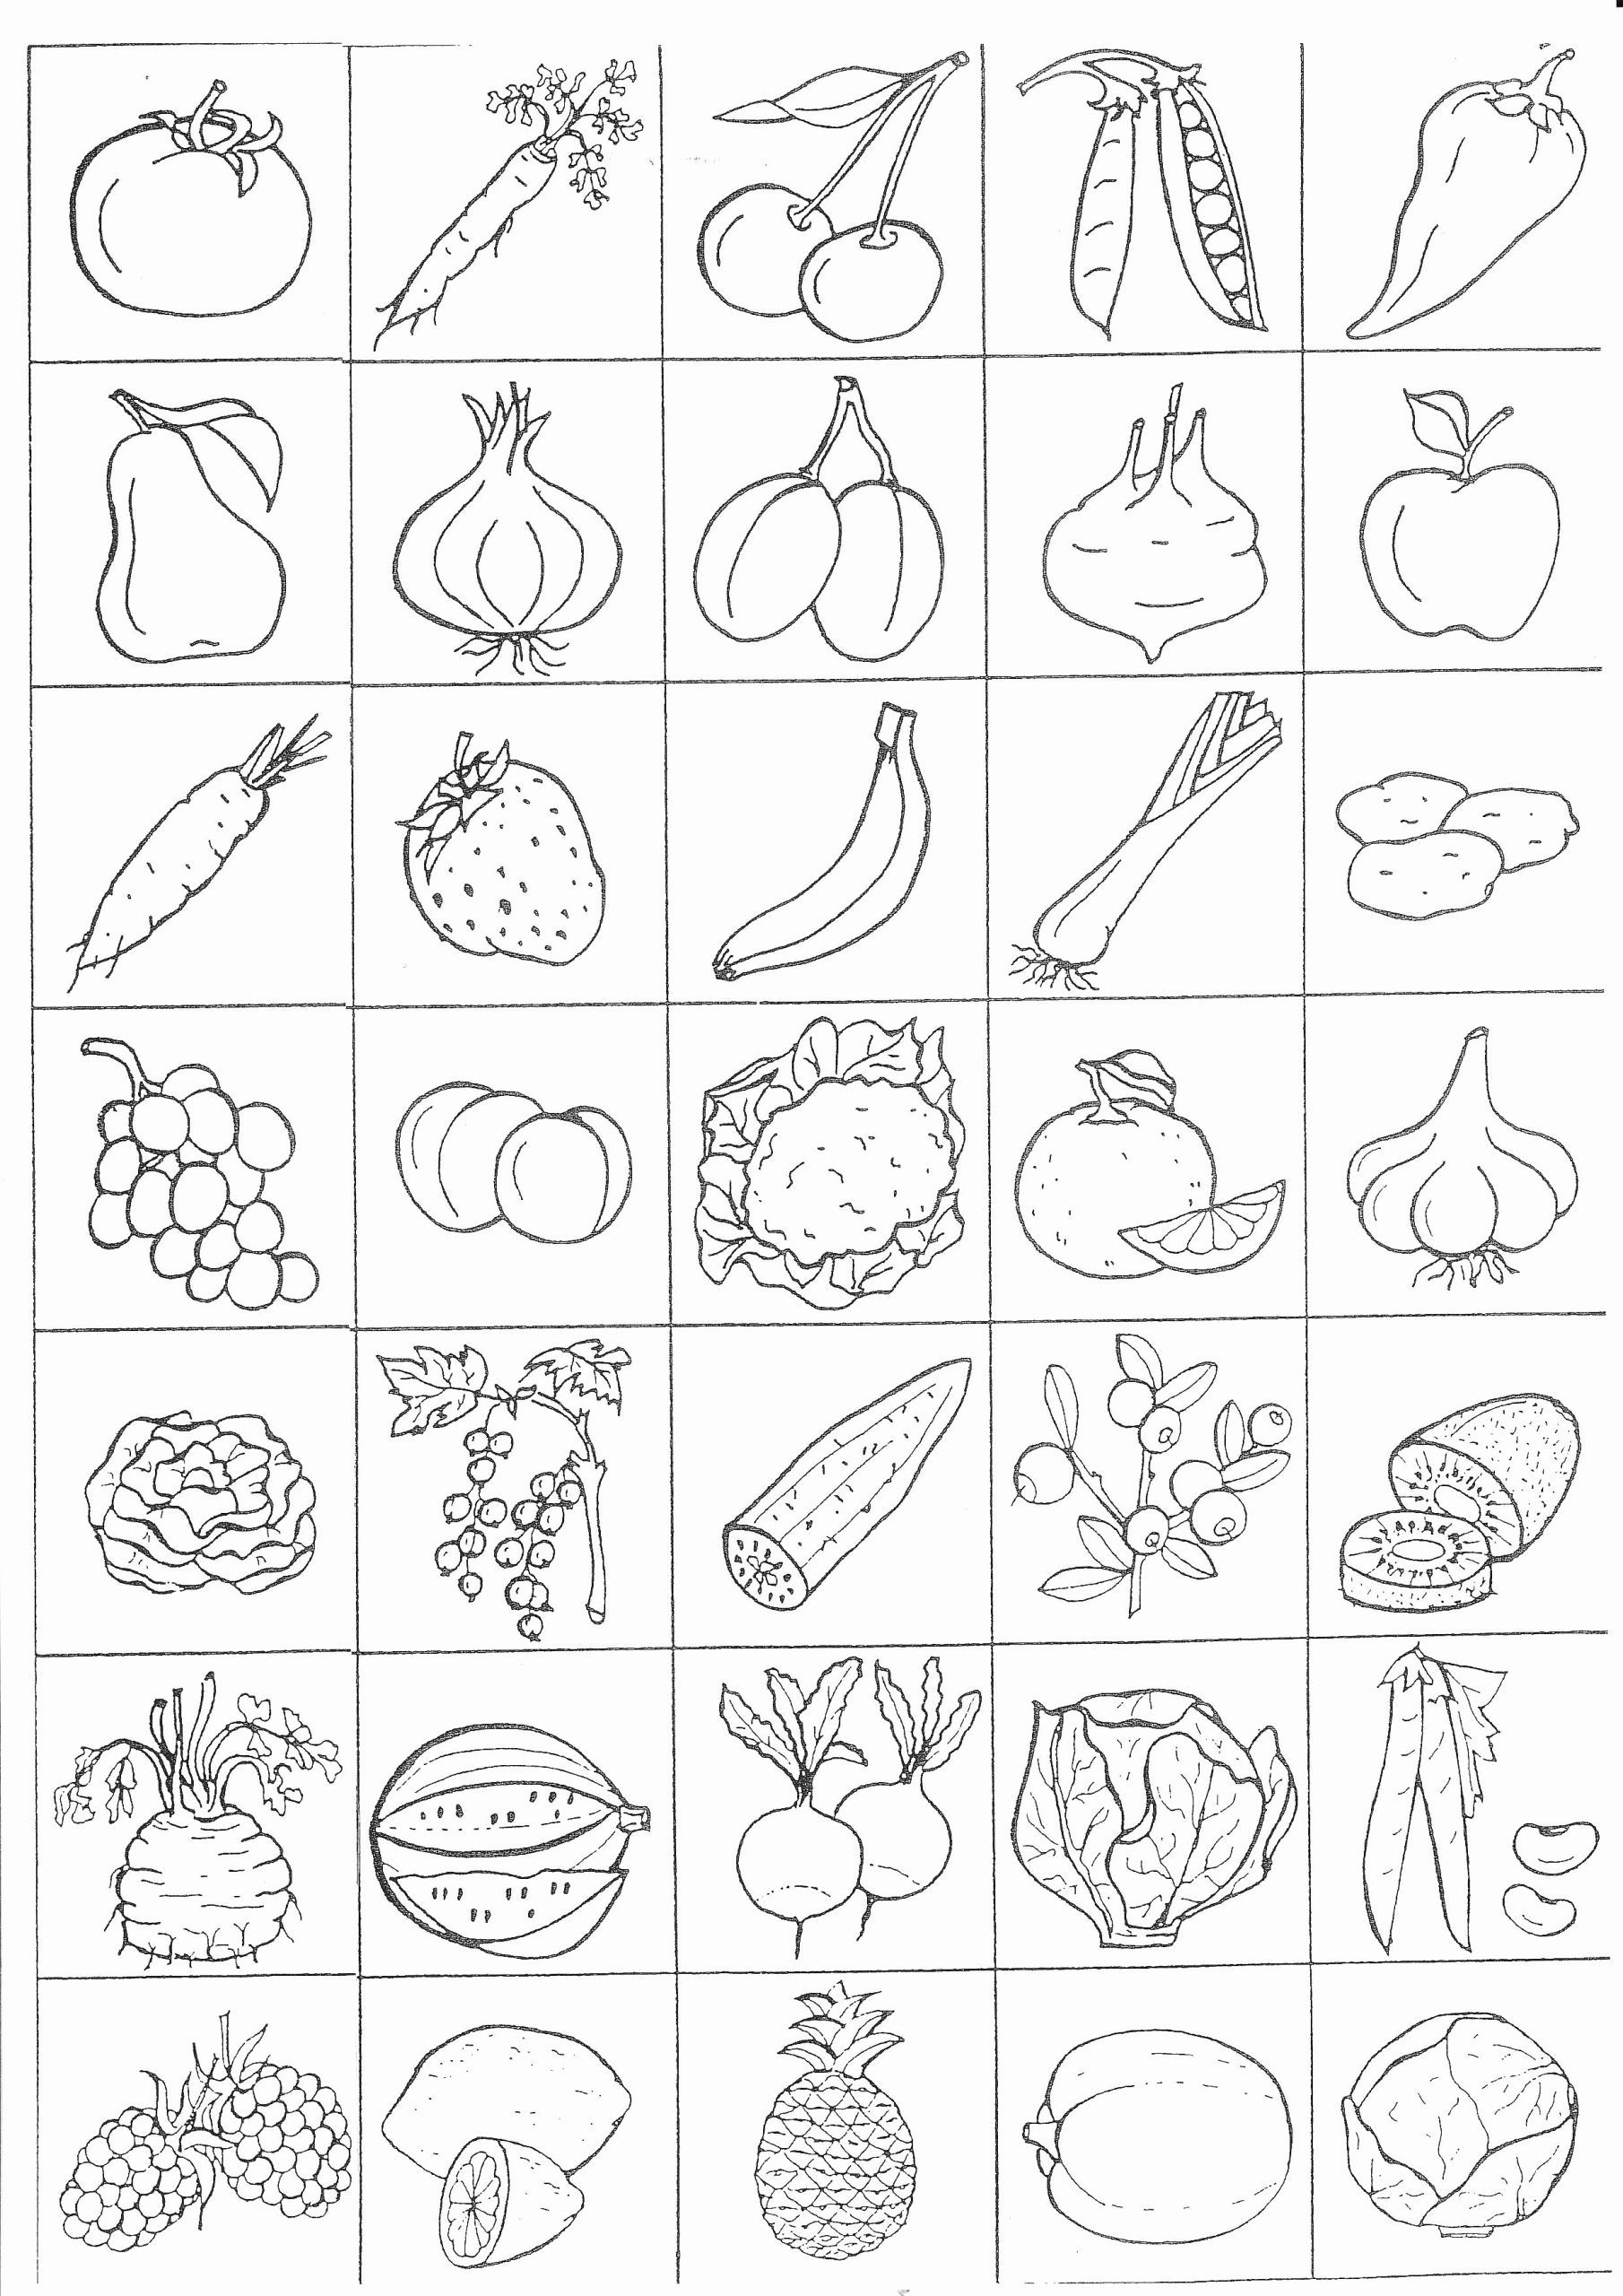 Vegetable Salad Coloring Pages